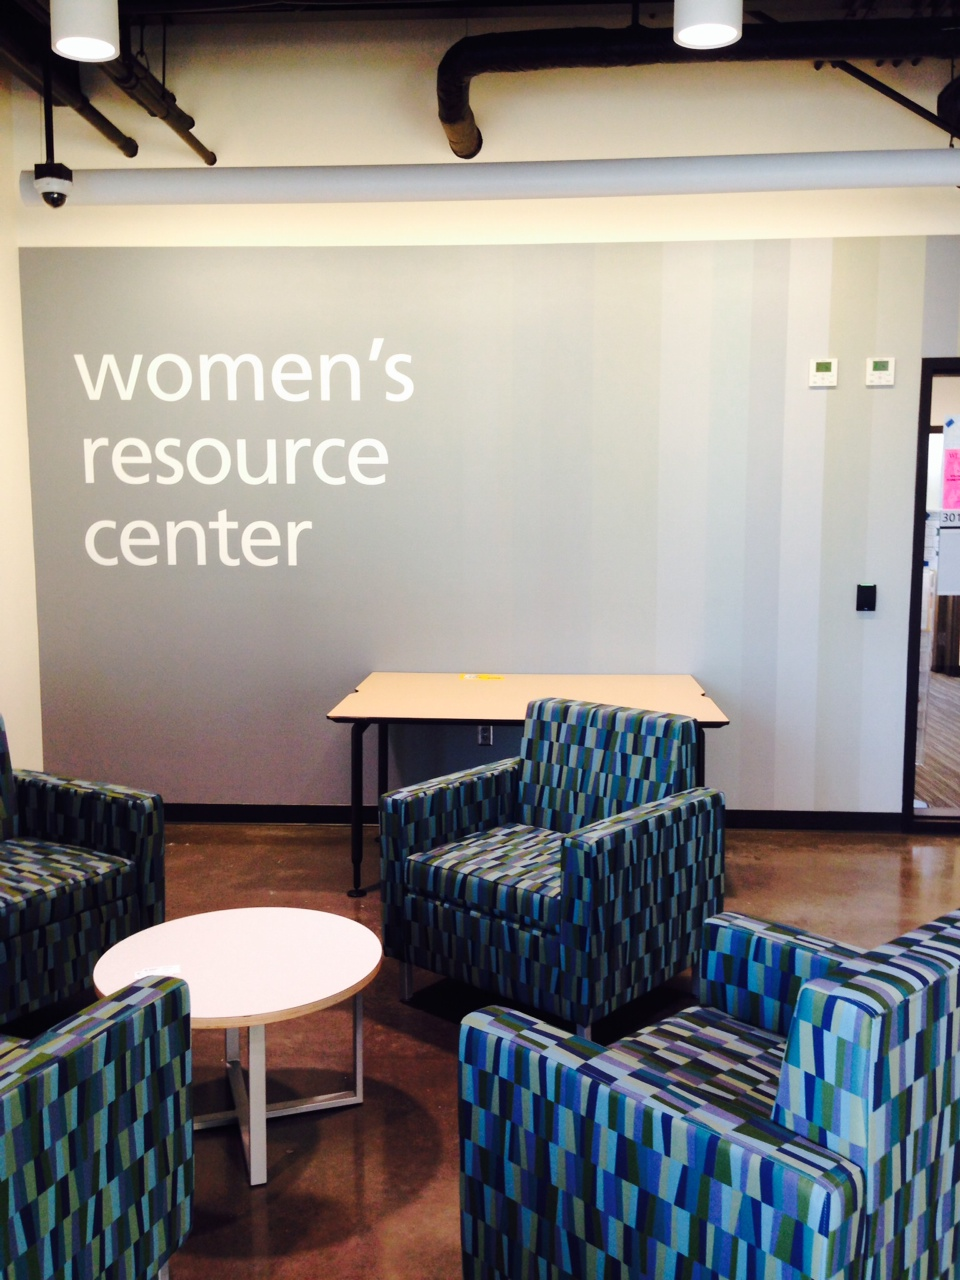 Cascade's Women's Resource Center shares the top floor of the new Student Union with the Multicultural Center and Office of International Education.